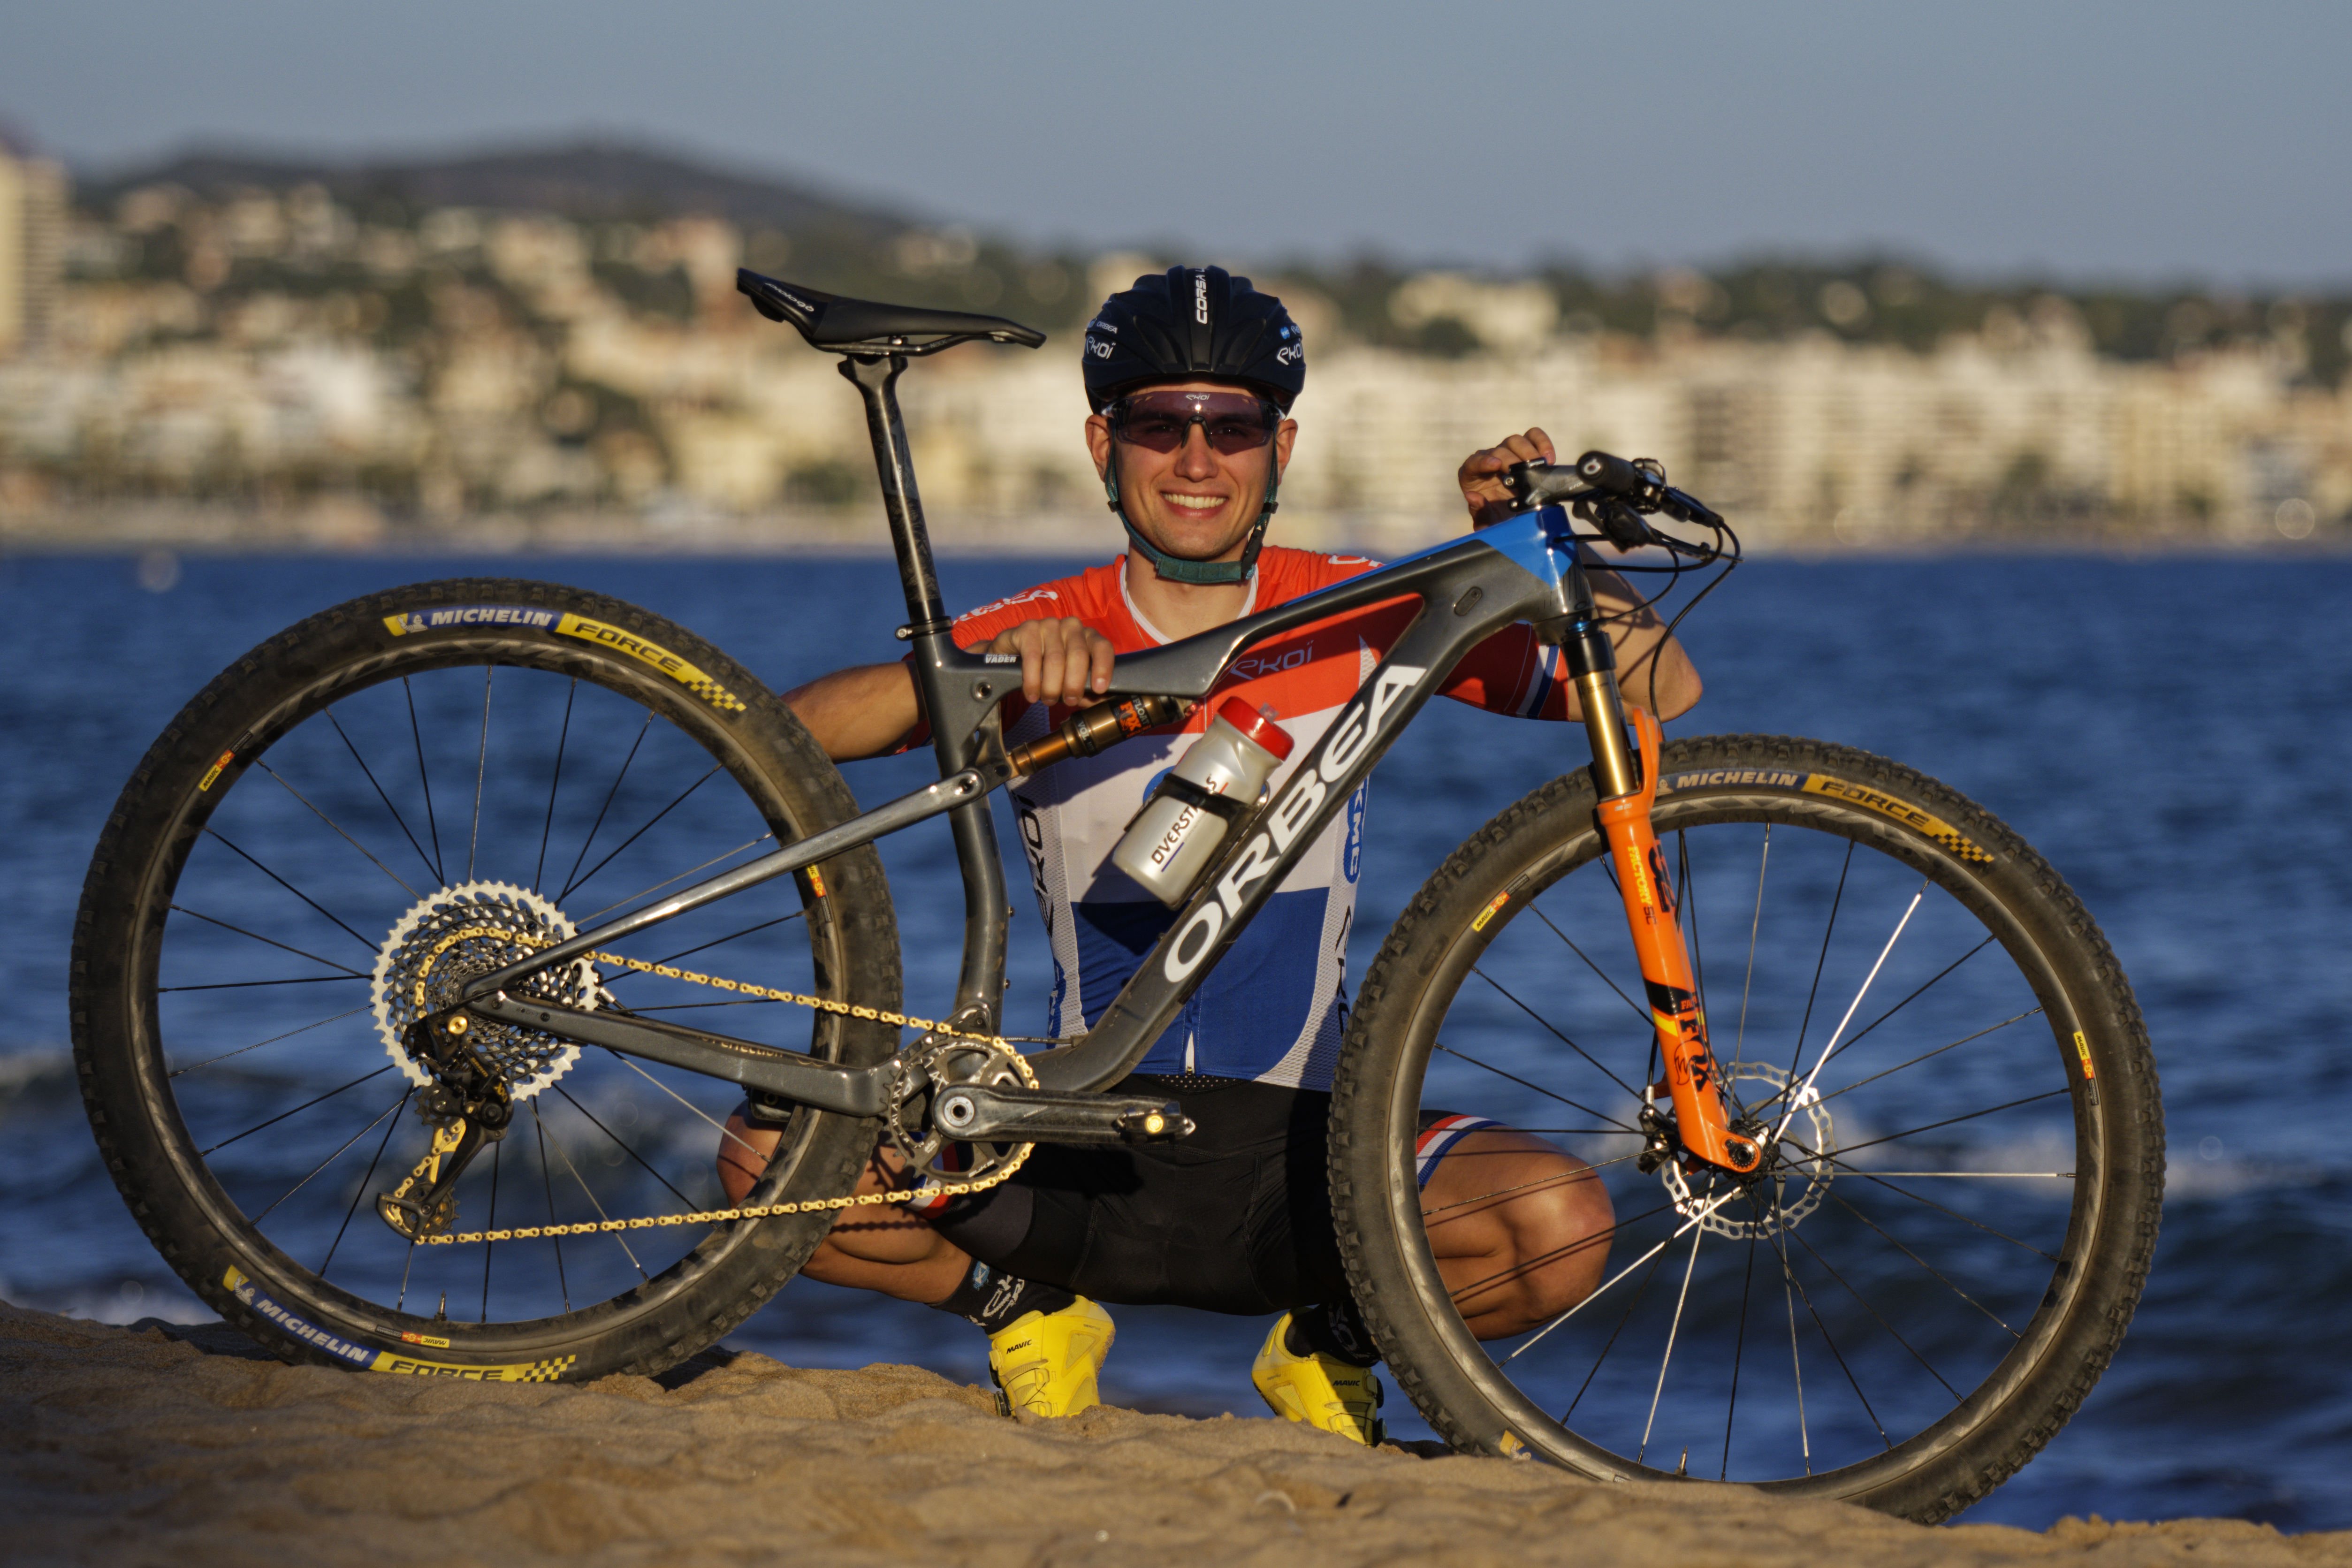 Milan Vader and his Orbea Oiz